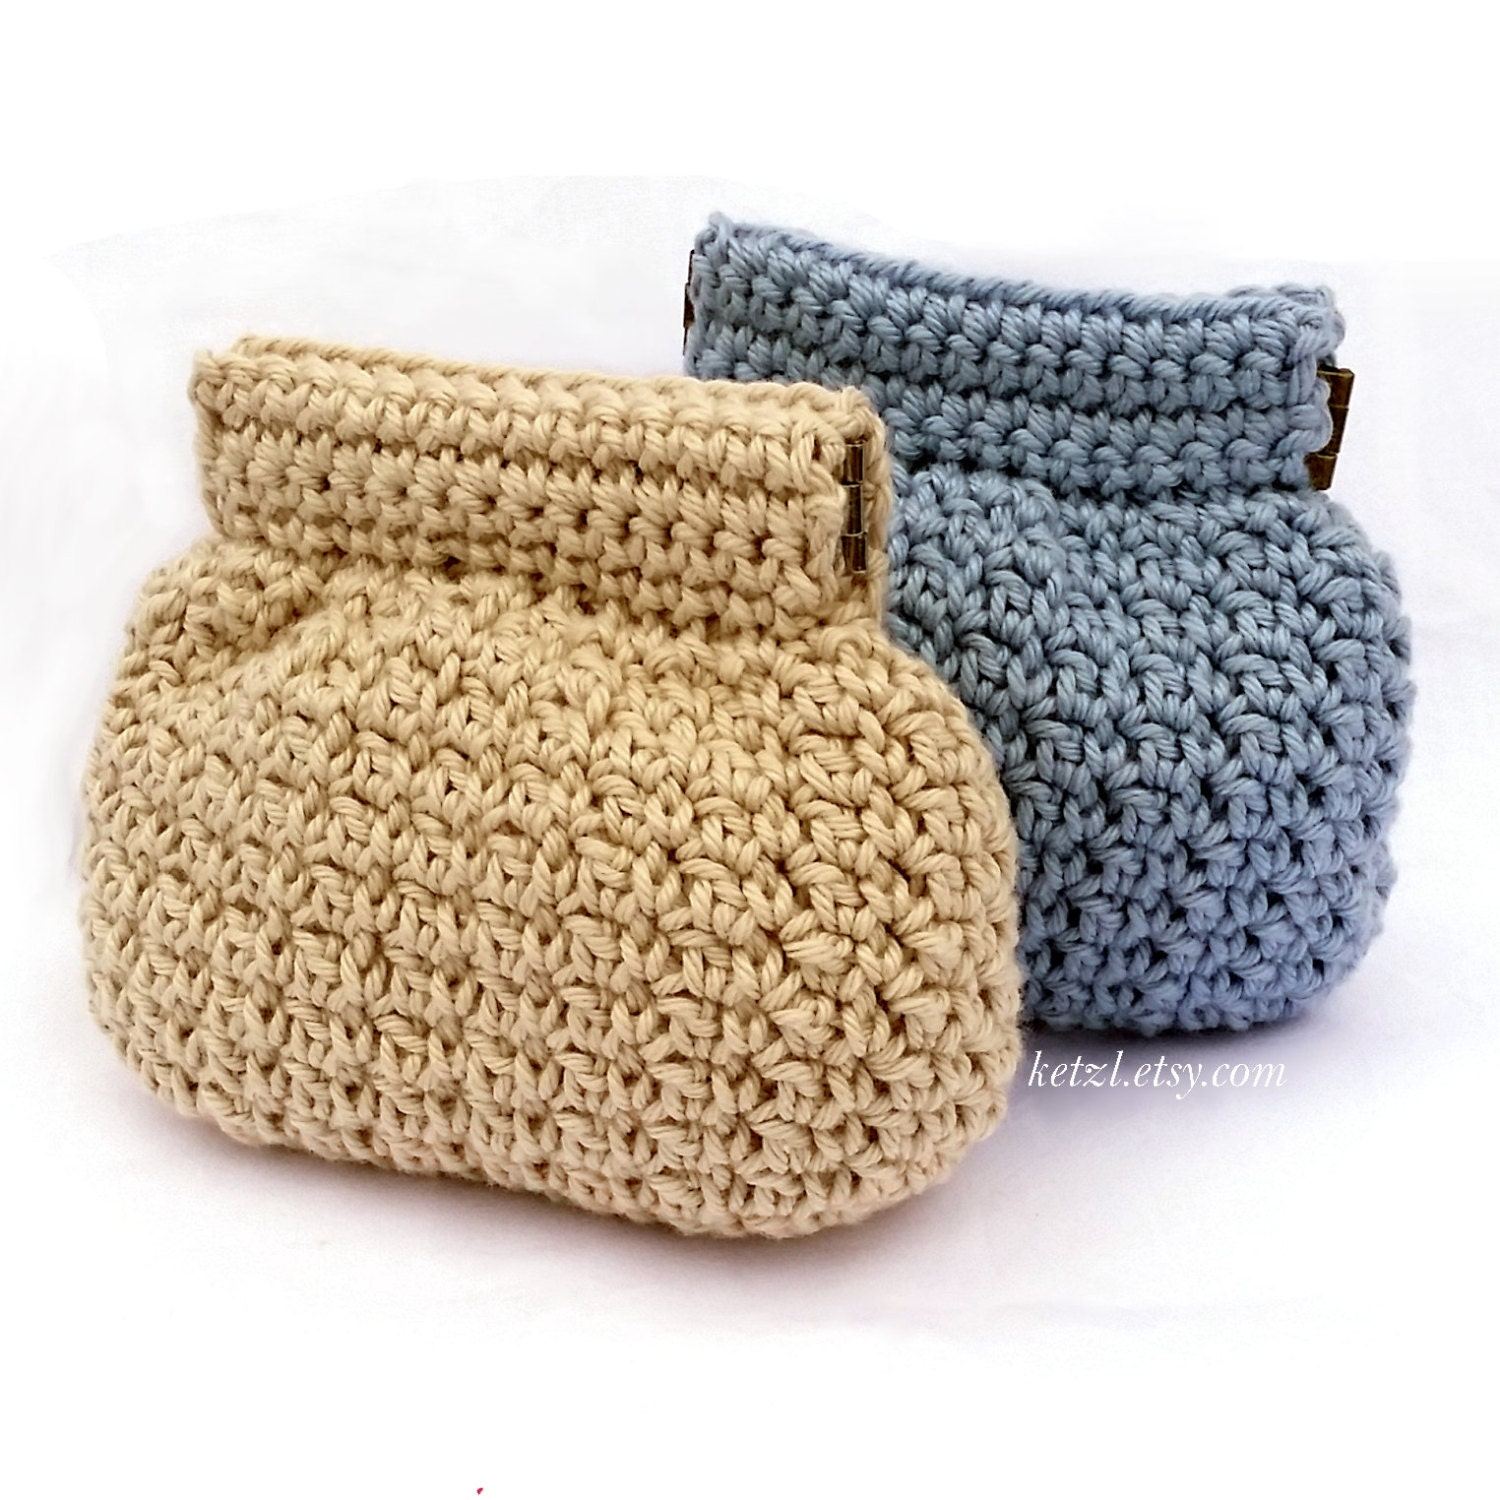 Small Bag Crochet Pattern : Purse crochet pattern coin purse pouch small squeeze frame by ketzl ...